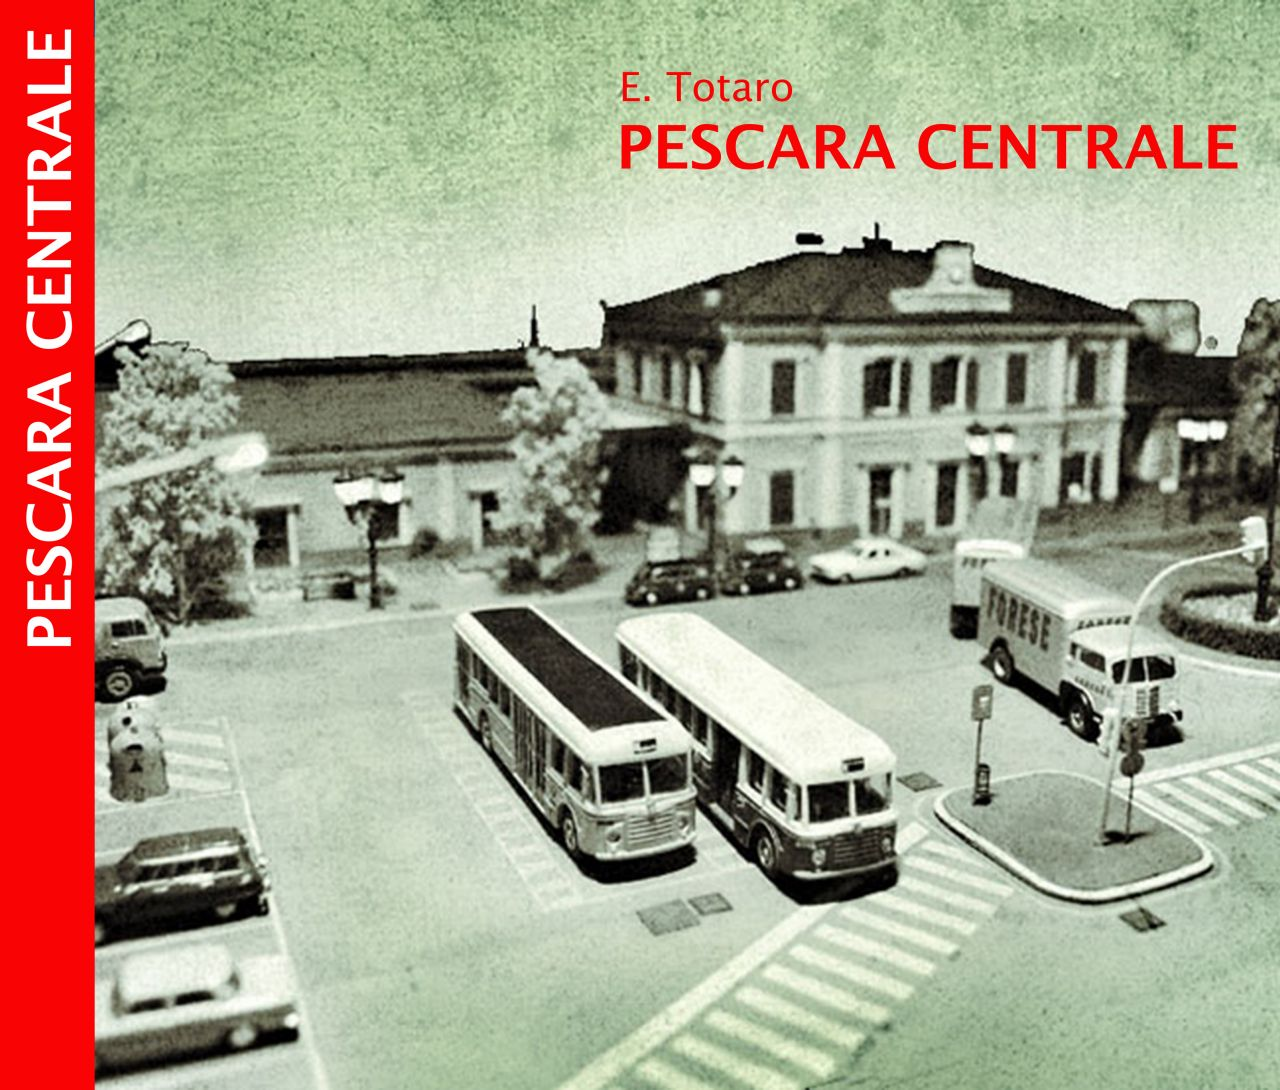 book-pescara-centrale-emilio-totaro-001